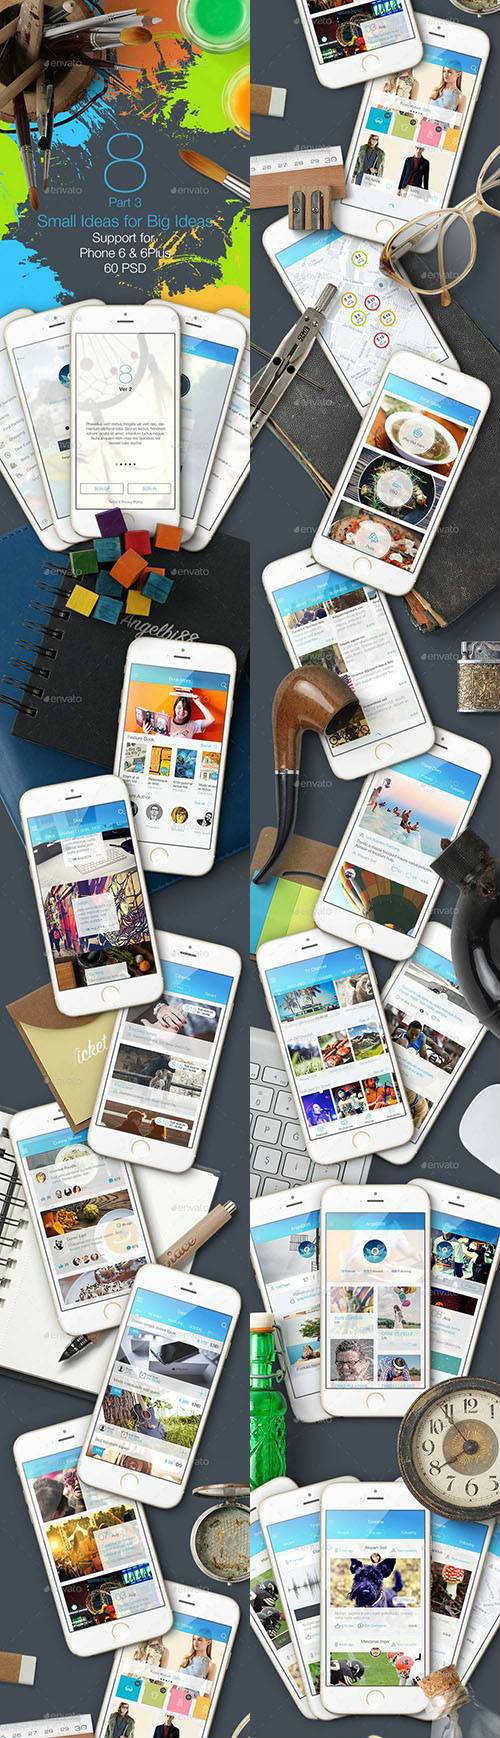 8 Part 3 Mobile UI Kit 9447664 - Graphicriver